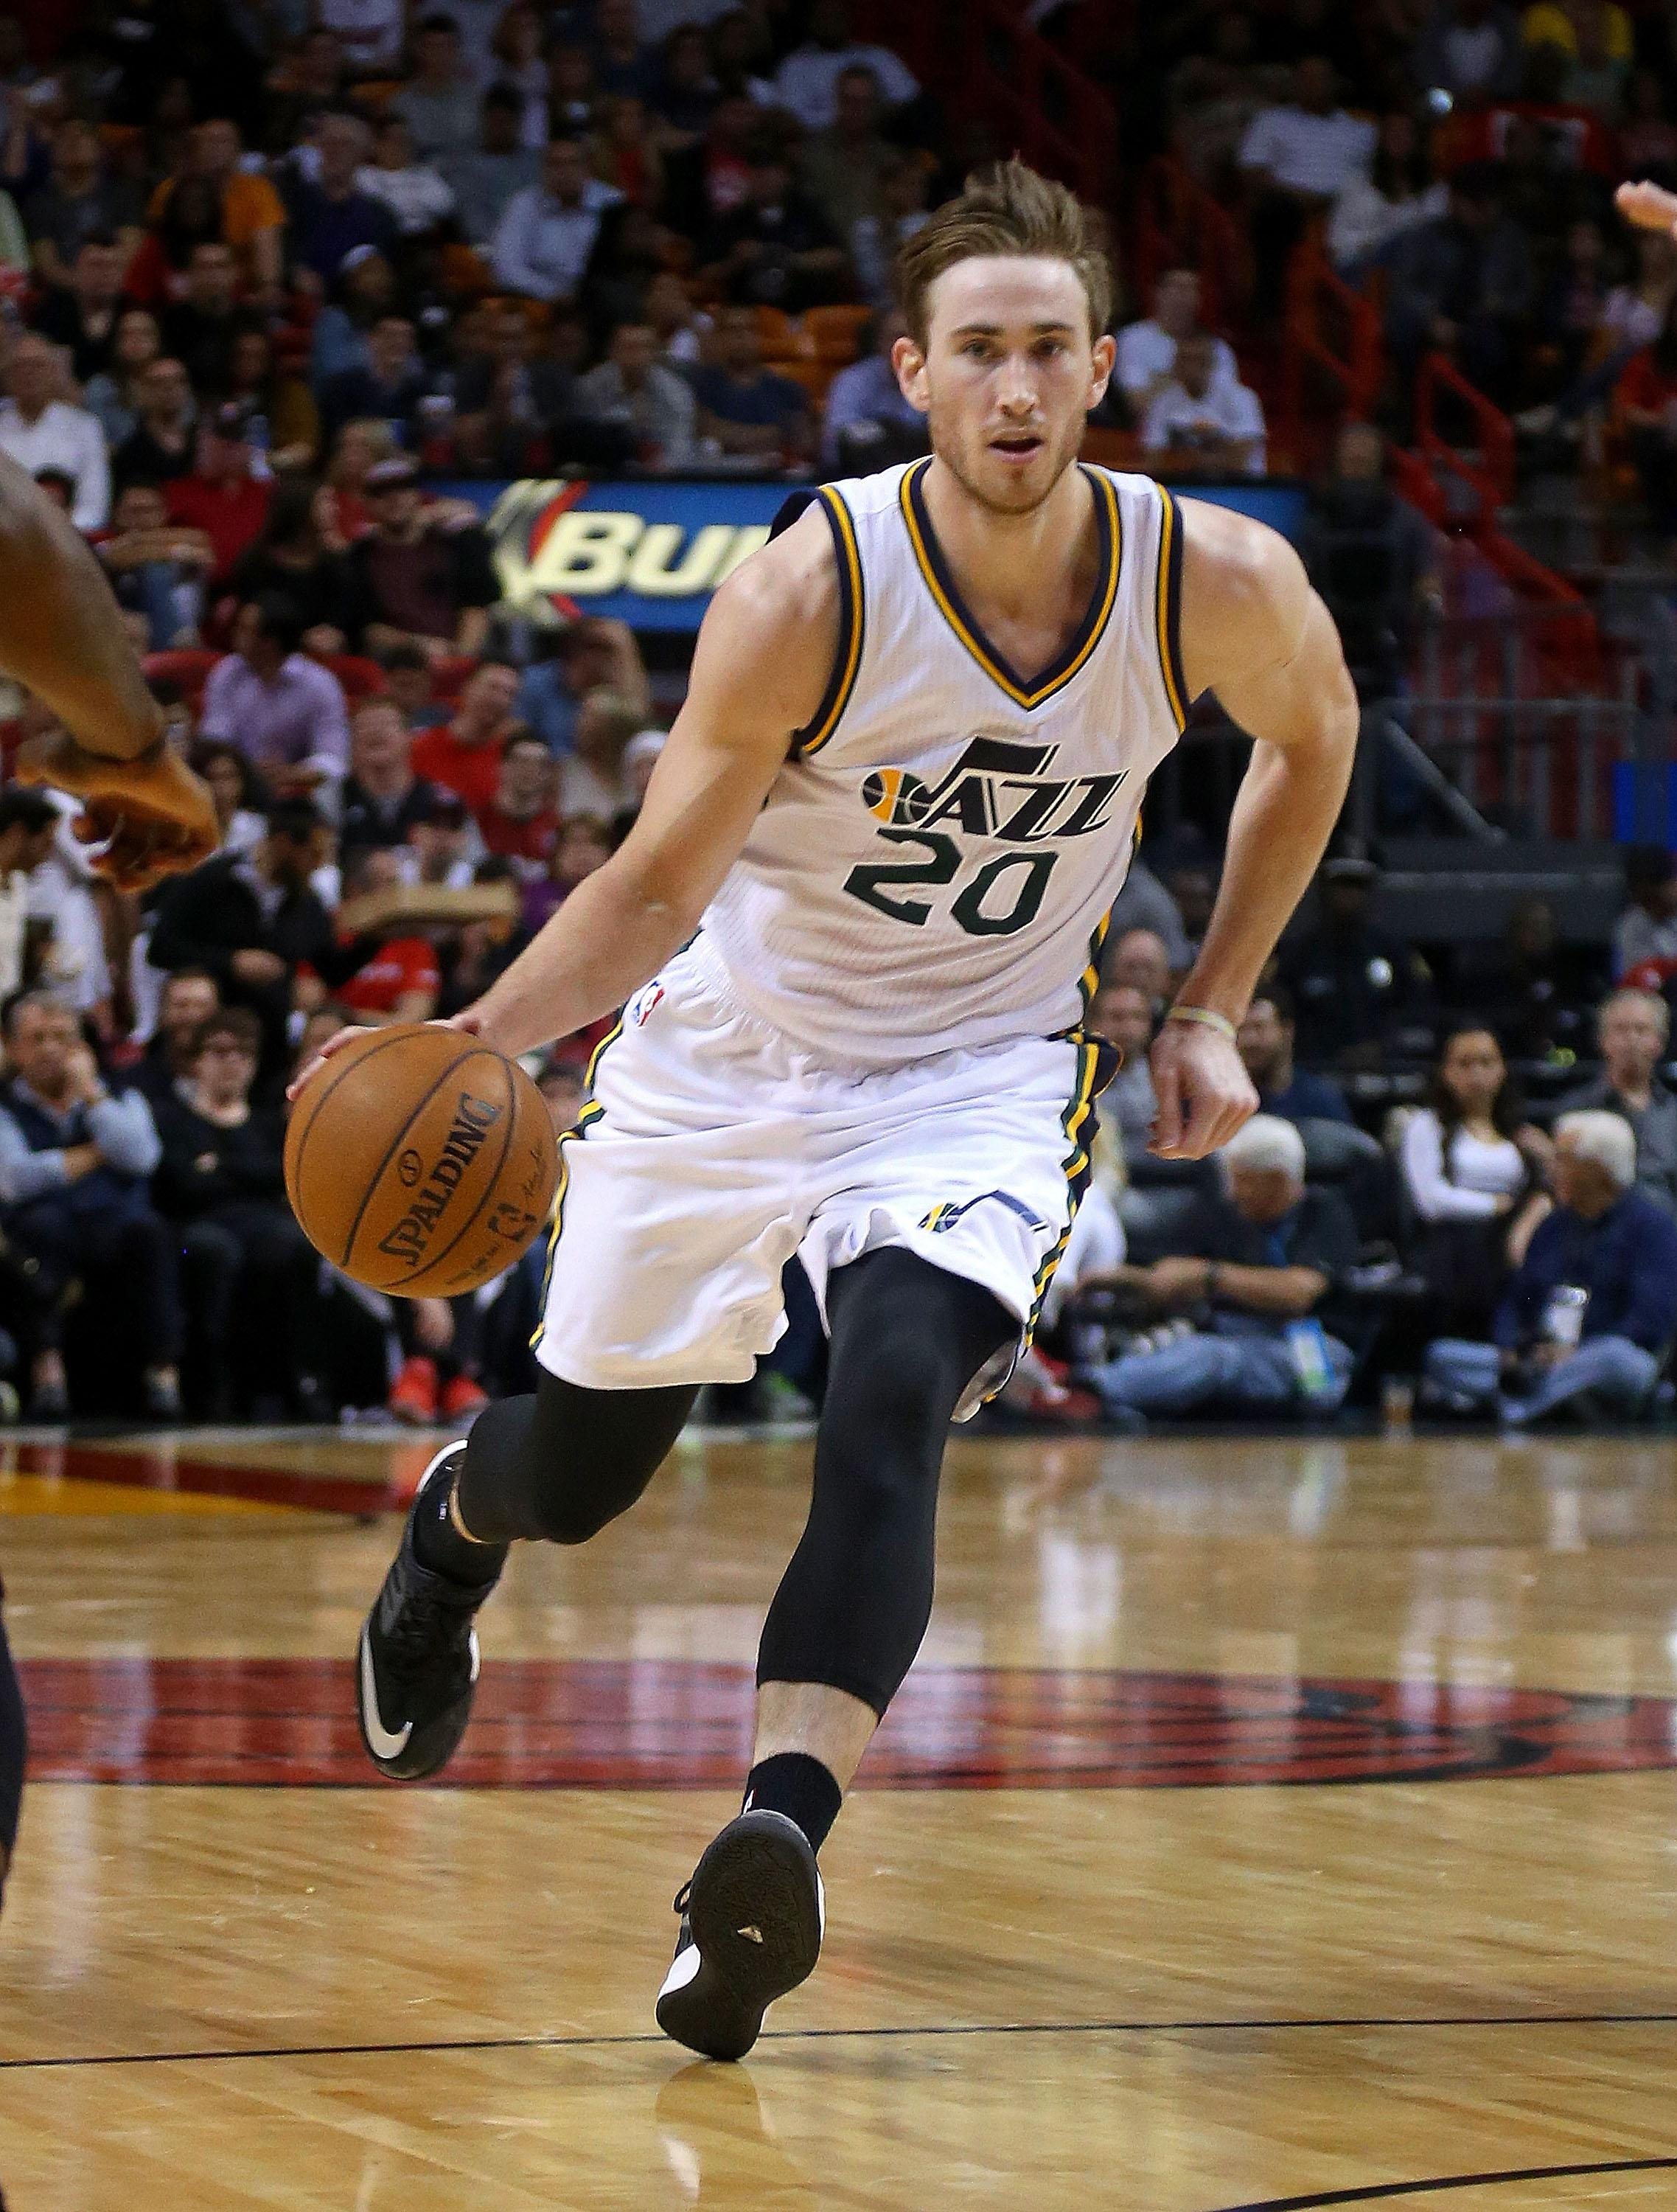 Jazz add to Heat woes, top Miami 105-87